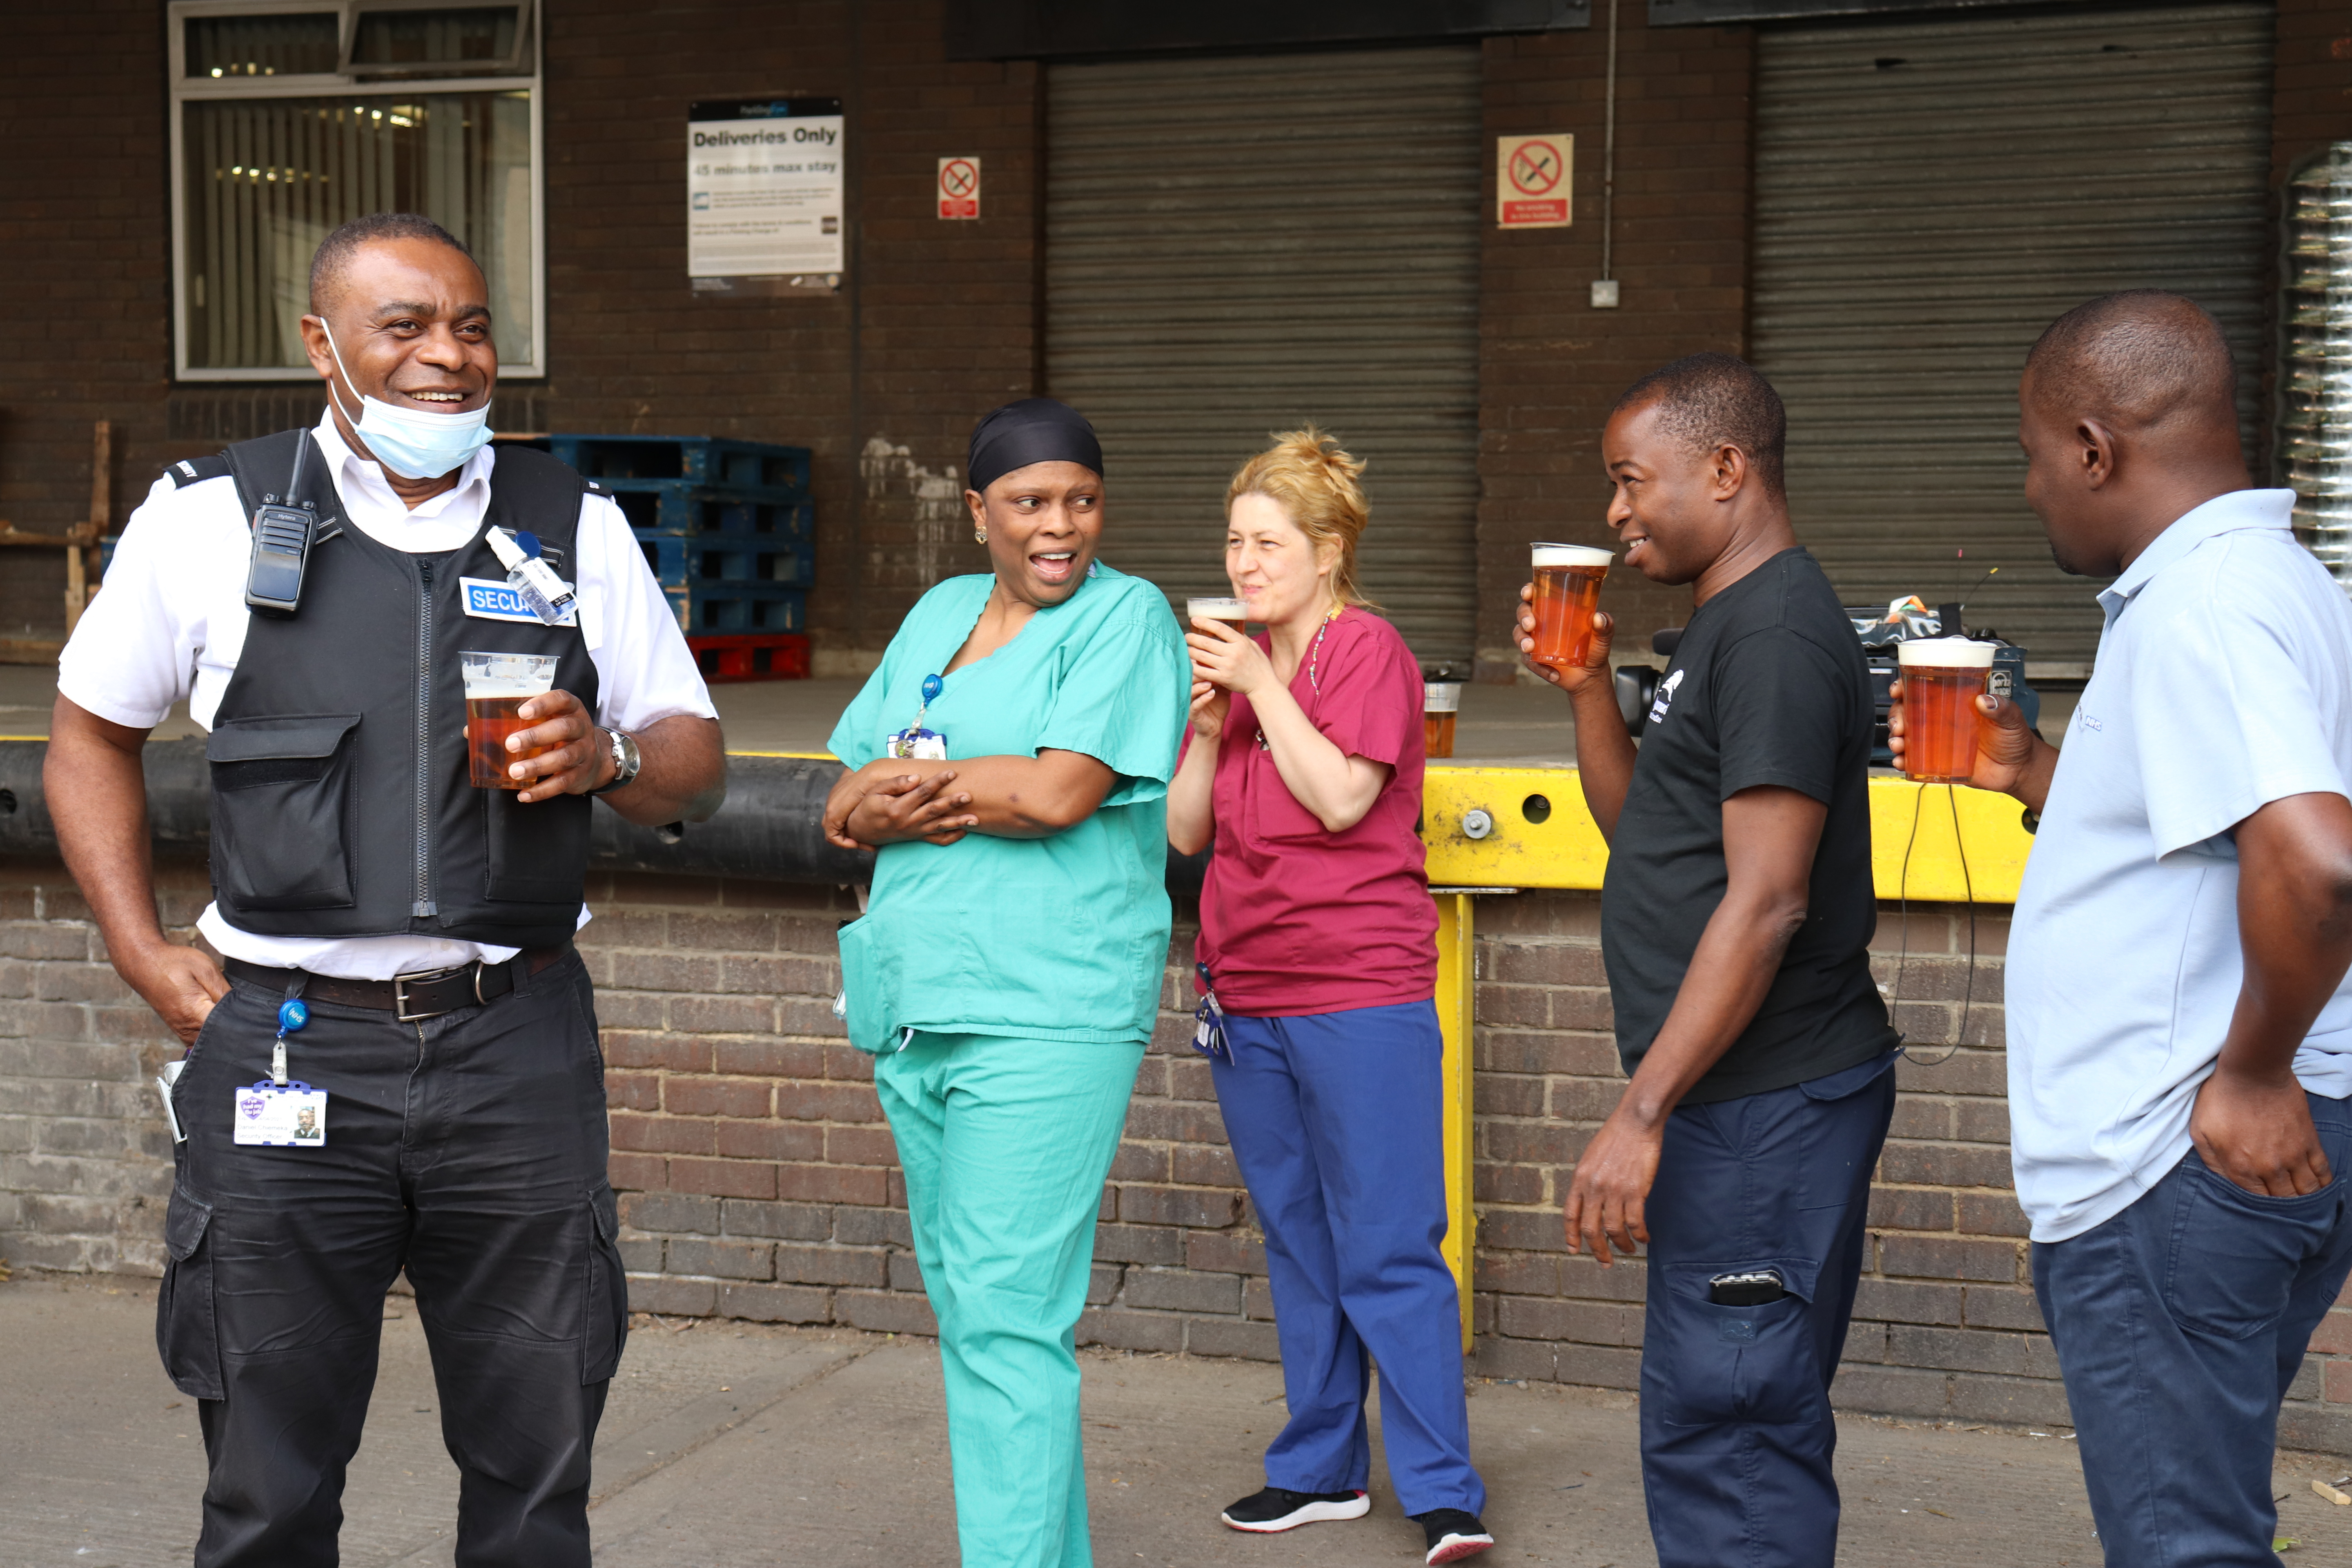 Alcohol-free beers being served to NHS staff